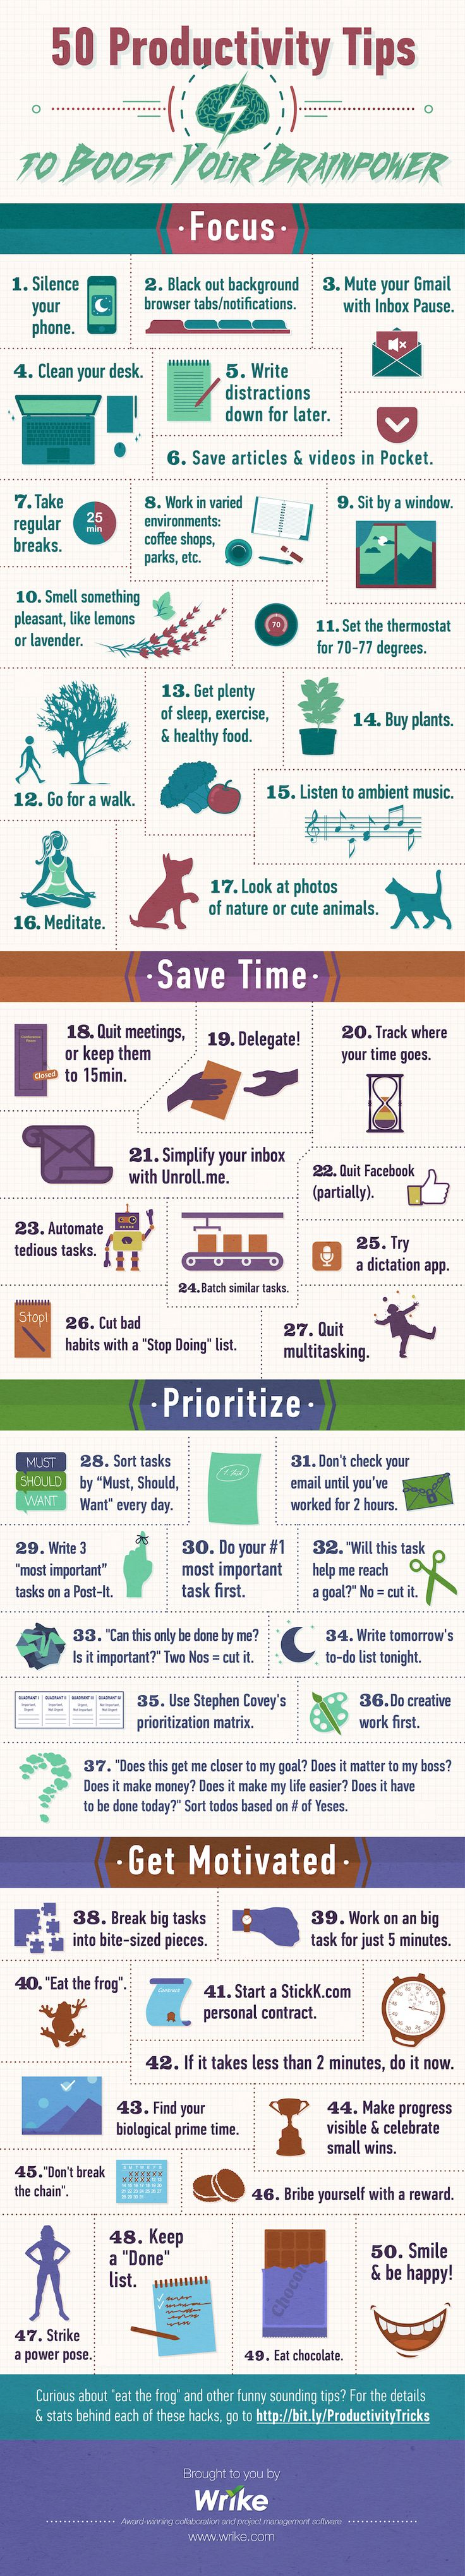 Tips to Boost Your Brainpower with 50 Productivity Tricks - Tipsographic